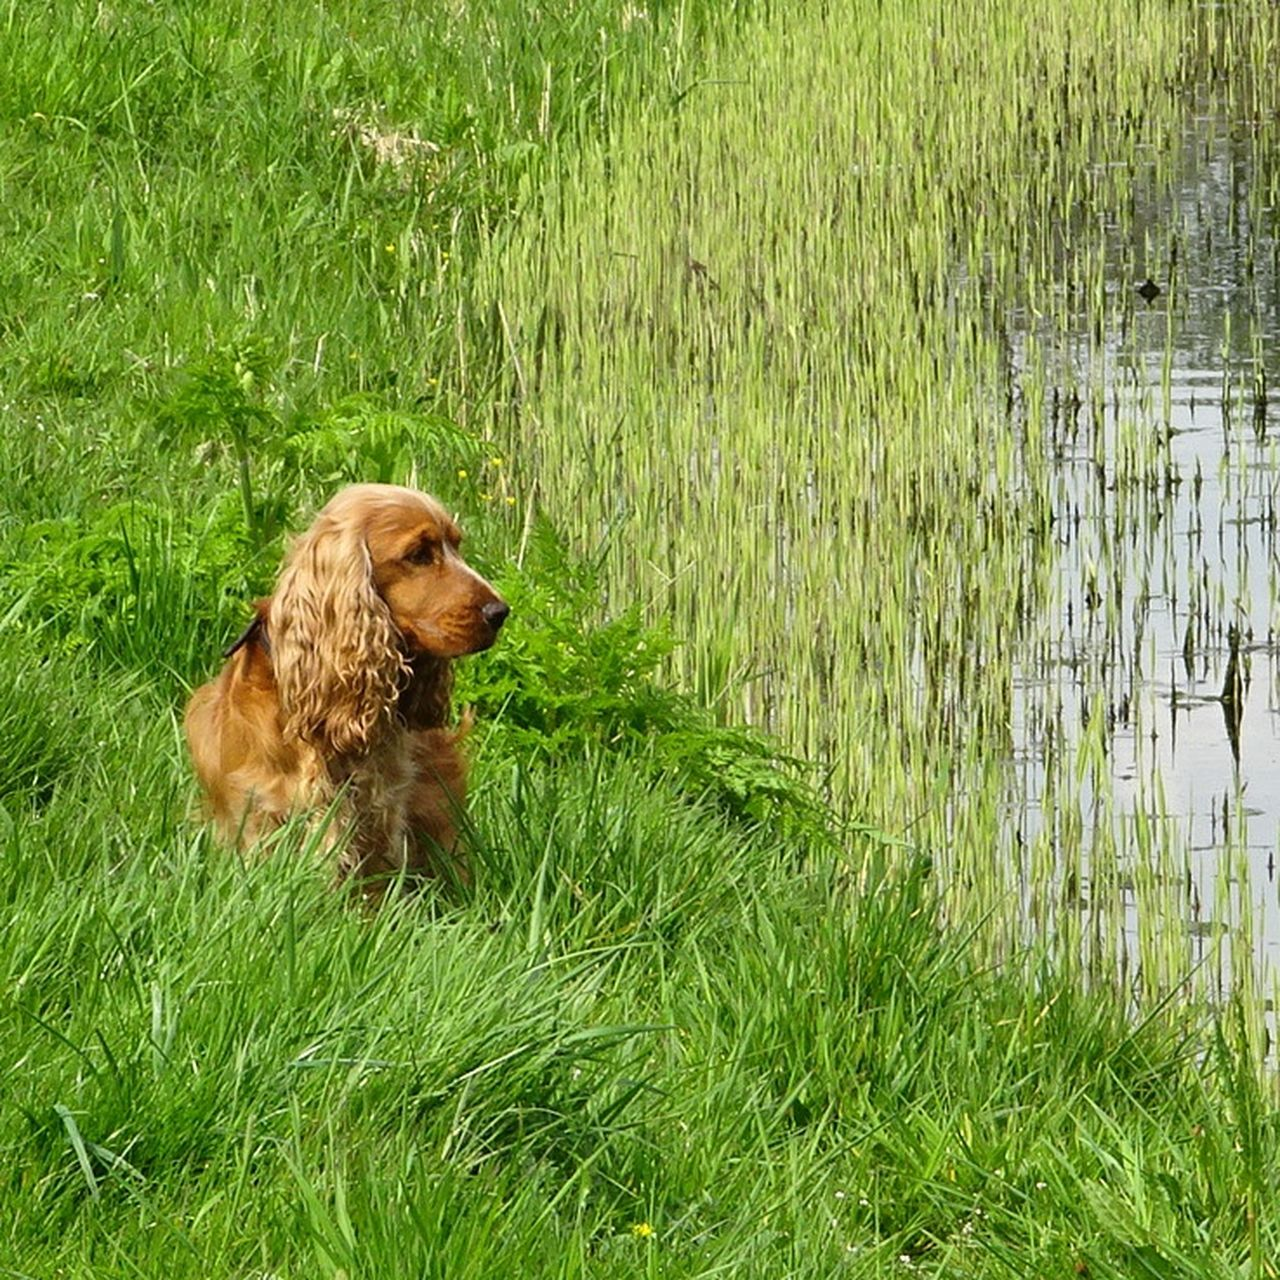 one animal, domestic, plant, dog, pets, domestic animals, canine, grass, animal, mammal, vertebrate, animal themes, green color, nature, day, field, growth, land, no people, outdoors